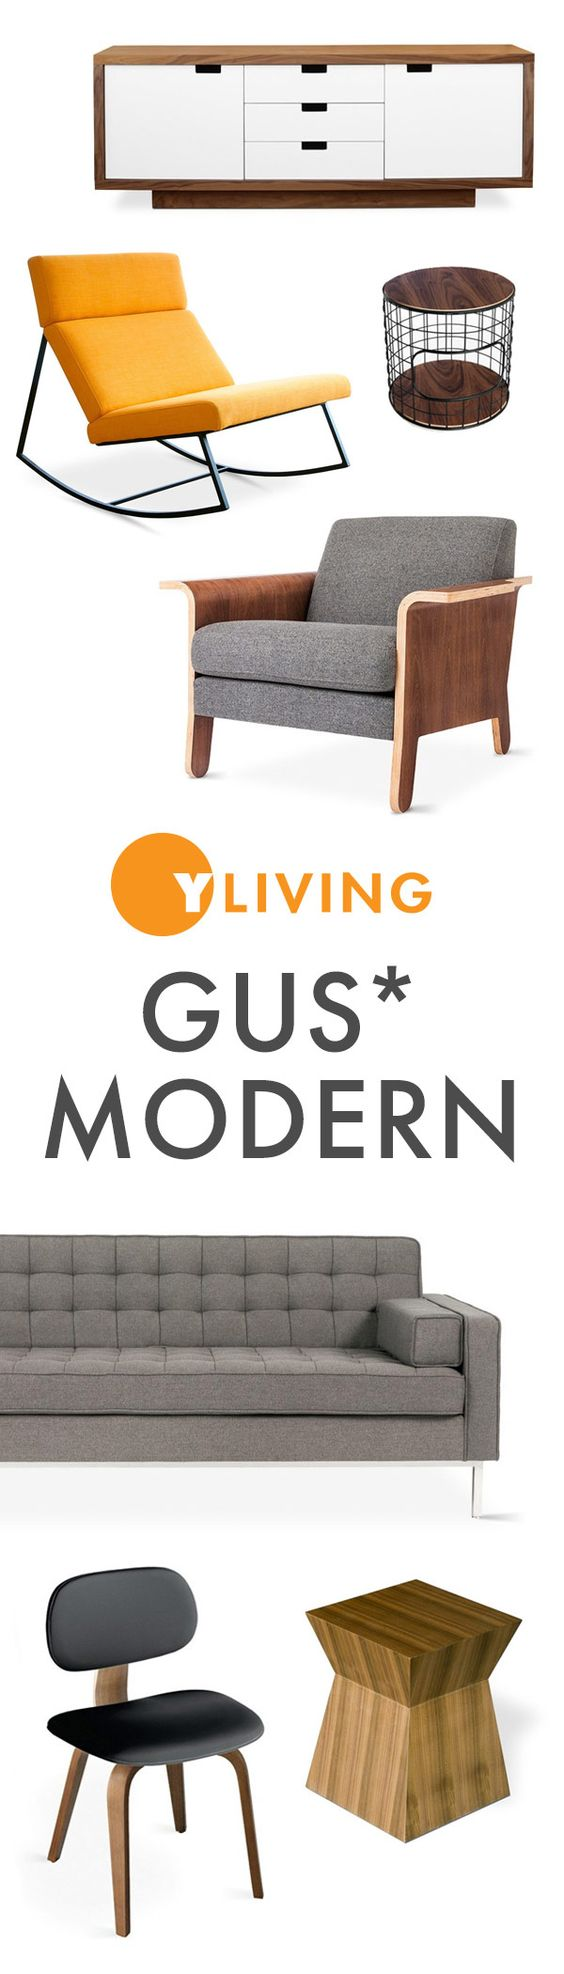 gus modern sale  gus modern warehouse sale cba f  - jane bisectional billiards flint open box chairs leather and gus modernsale